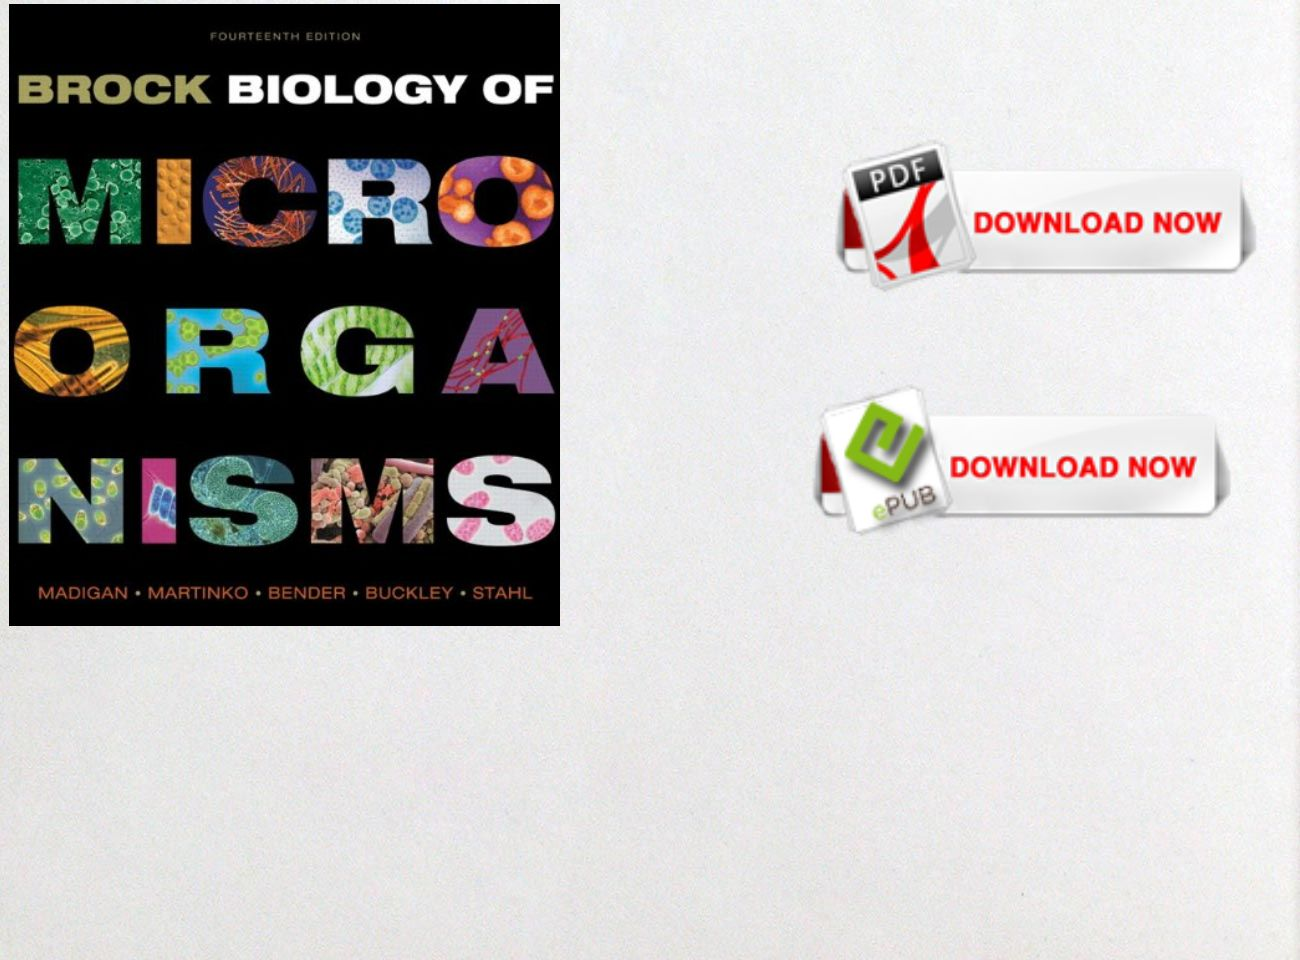 Free Download Pdf Ebook Brock Biology Of Microorganisms 14th